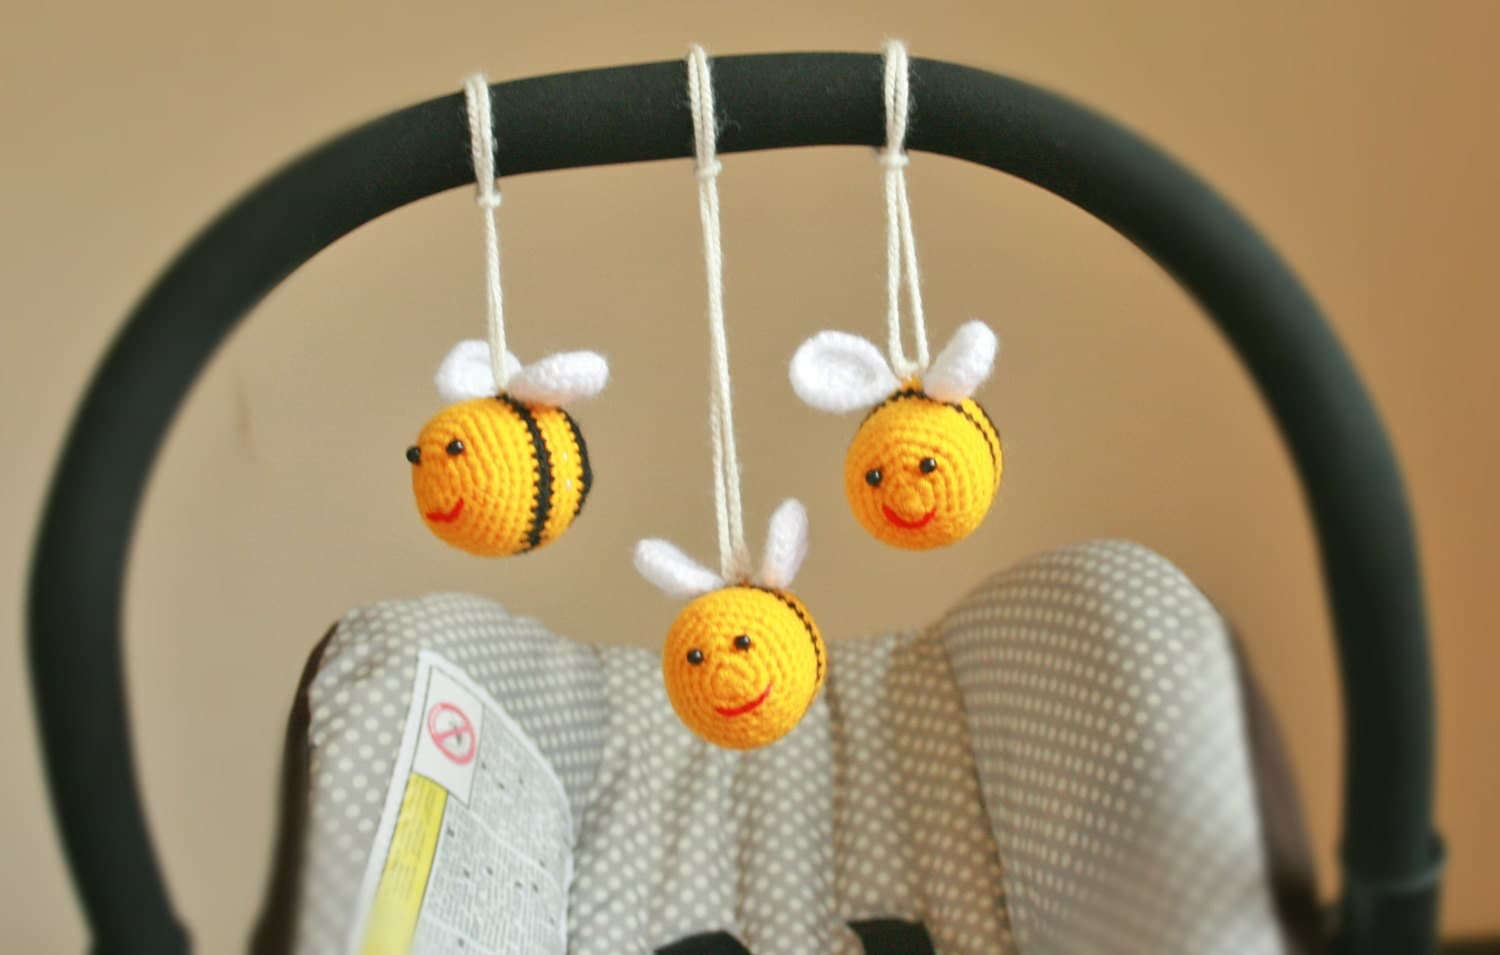 Toy Car Seat  Play Gym Toy  Crochet Bees Toy  Stroller Mobile  Pram Toy rattle baby toy